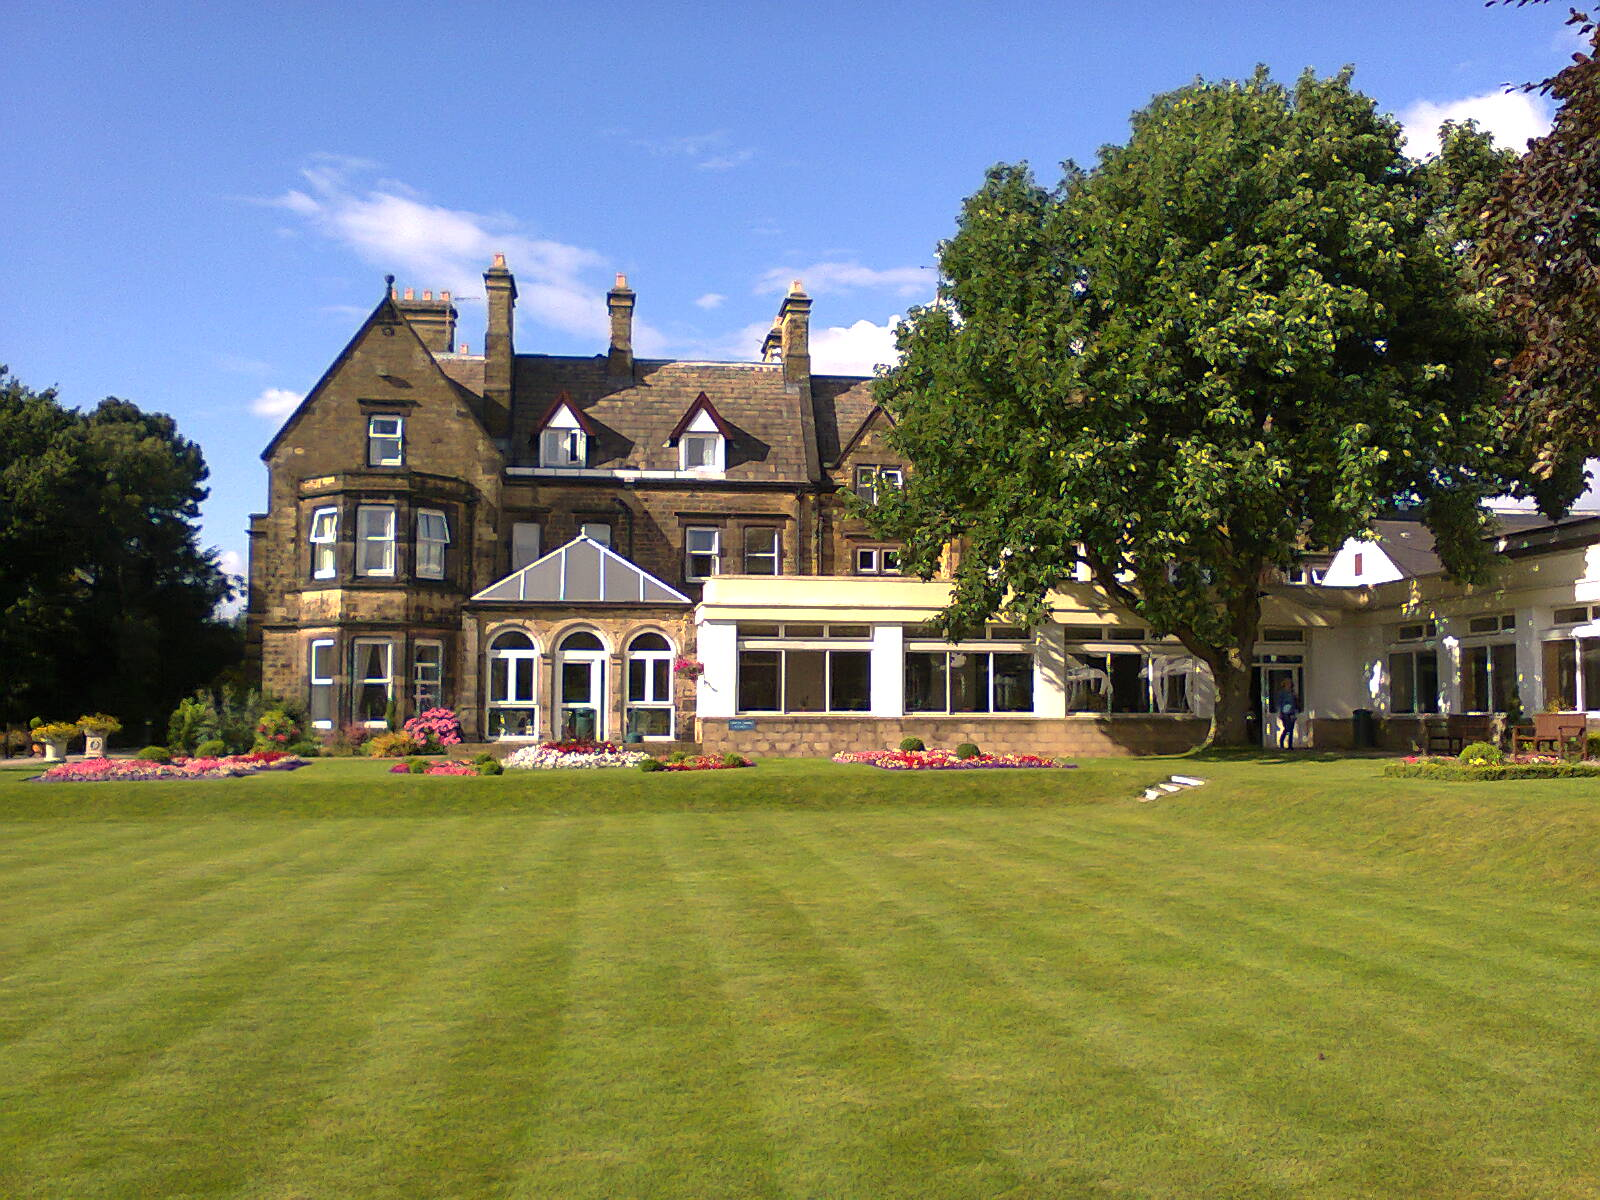 The Hayes Conference Centre, Derbyshire - home to the Swanwick Summer Writers' School. Image by Allison Symes